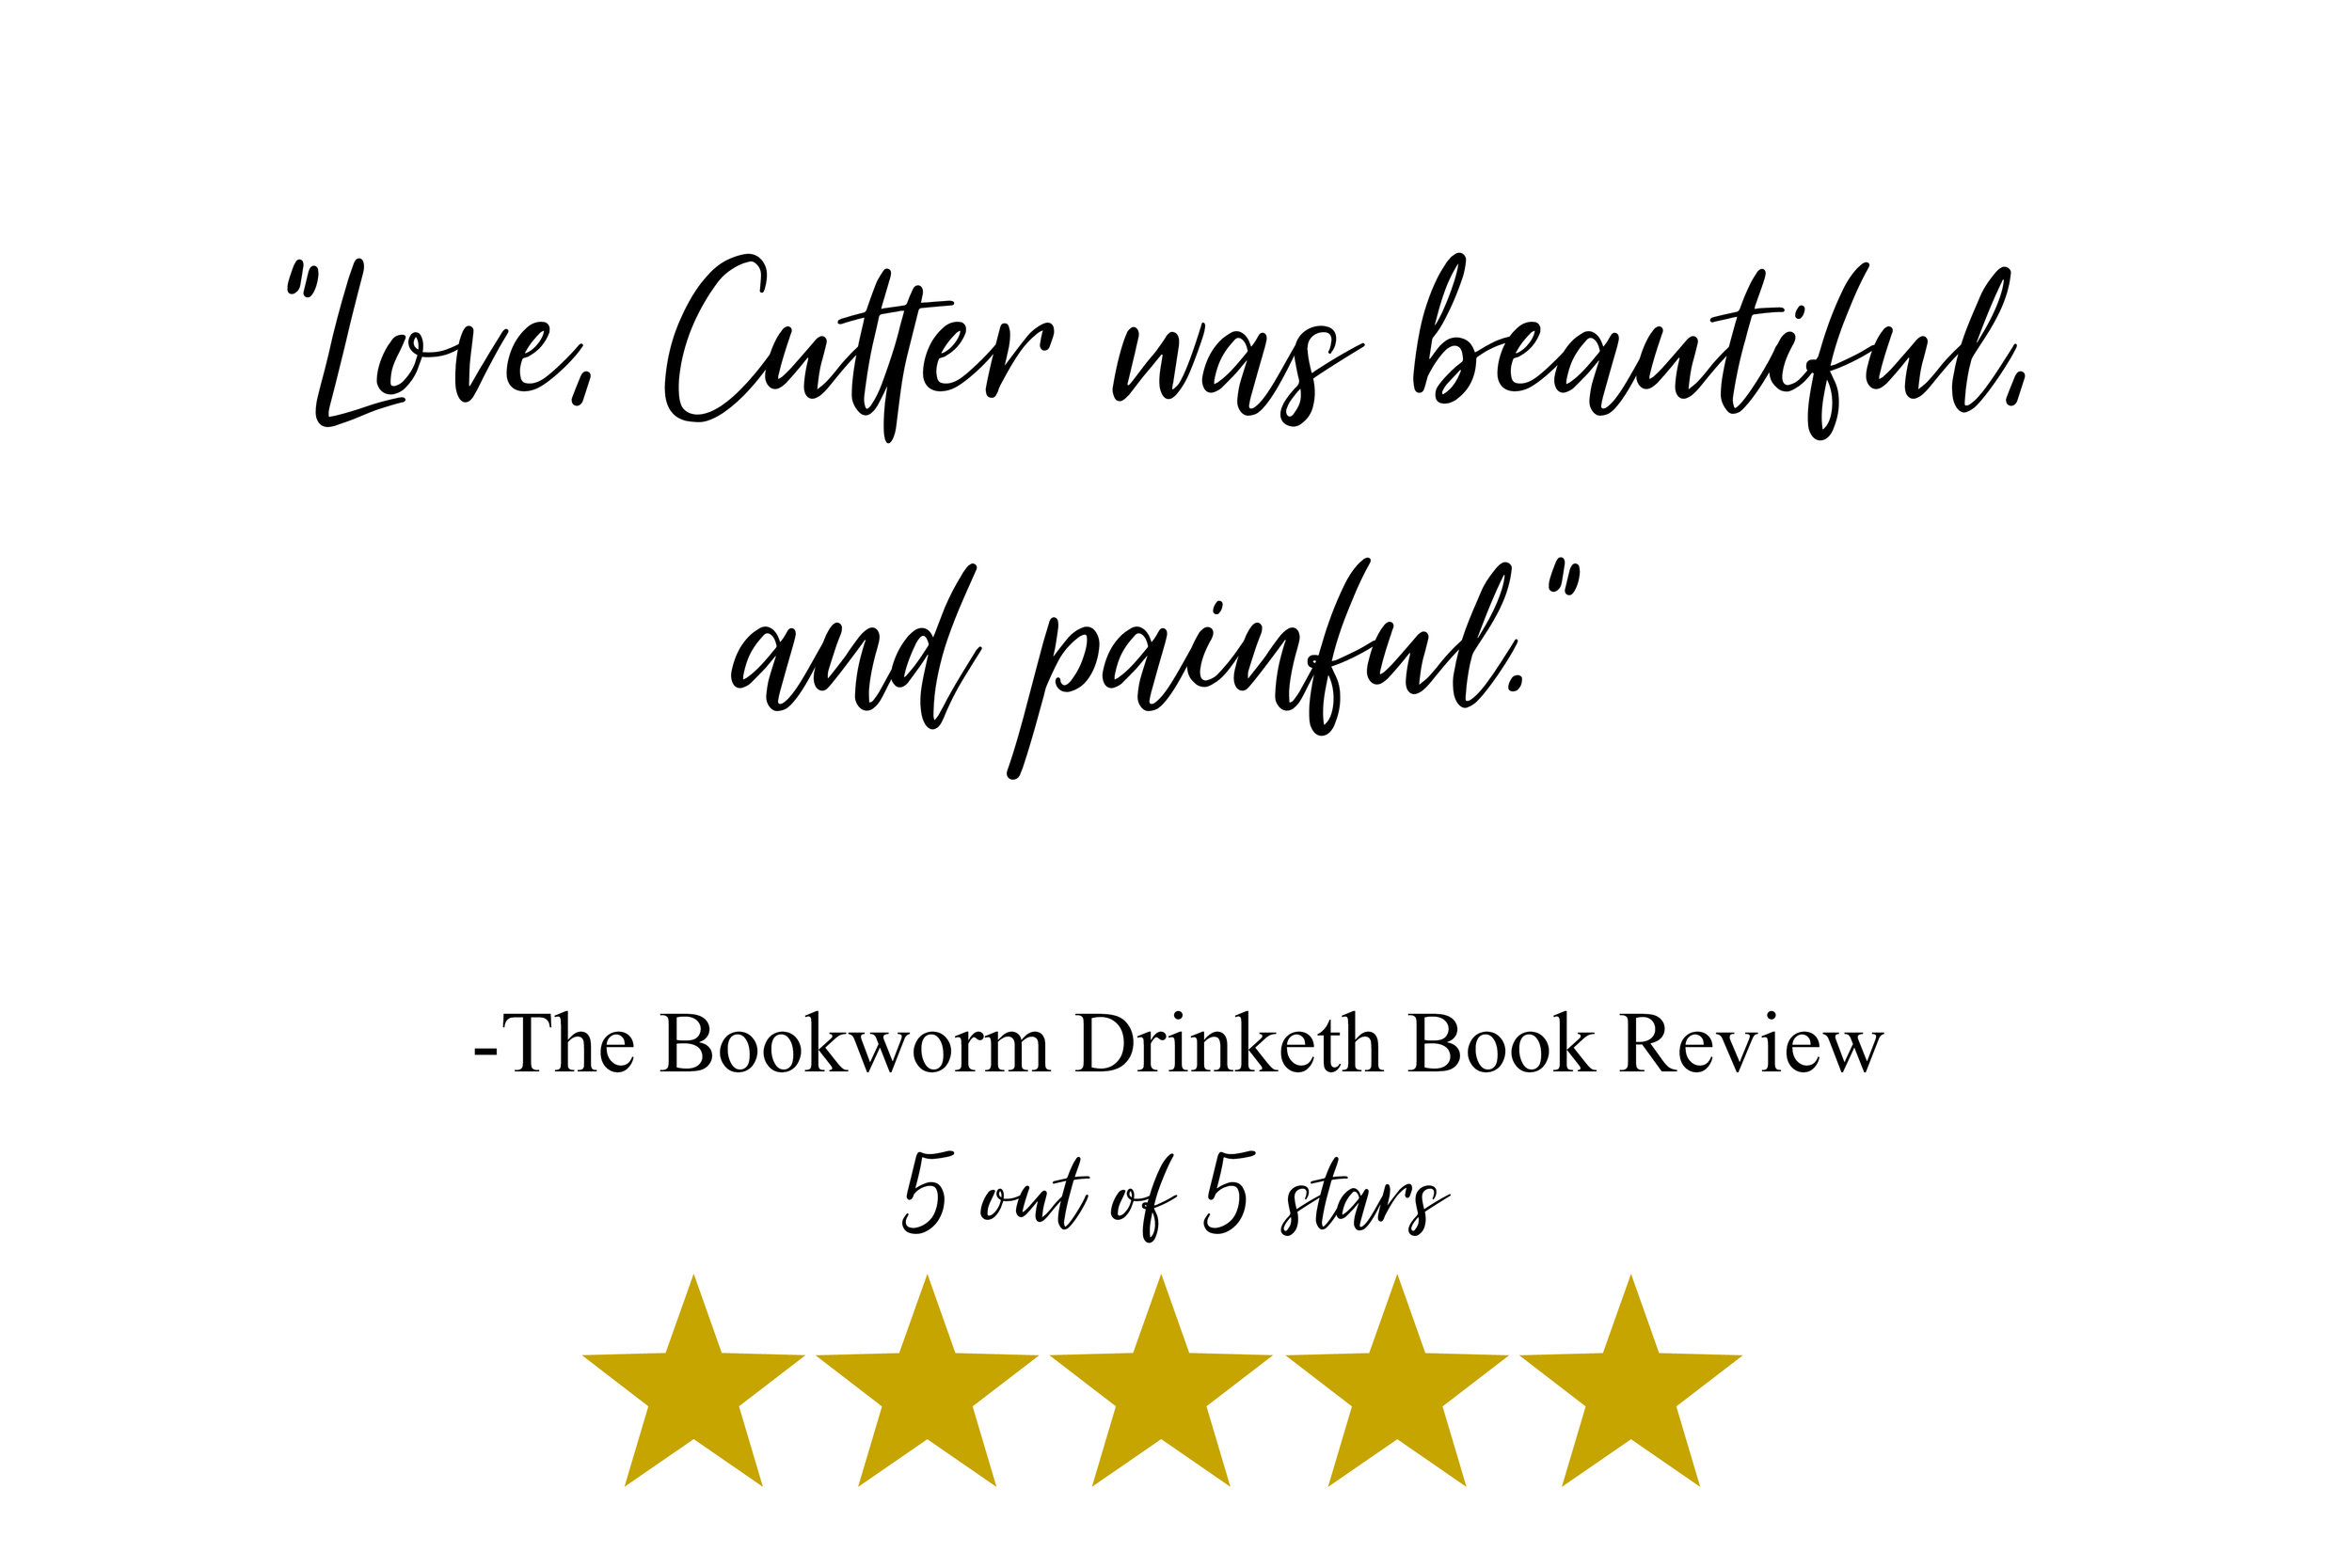 """Love, Cutter was beautiful, and painful."" -The Bookworm Drinketh Book Review"